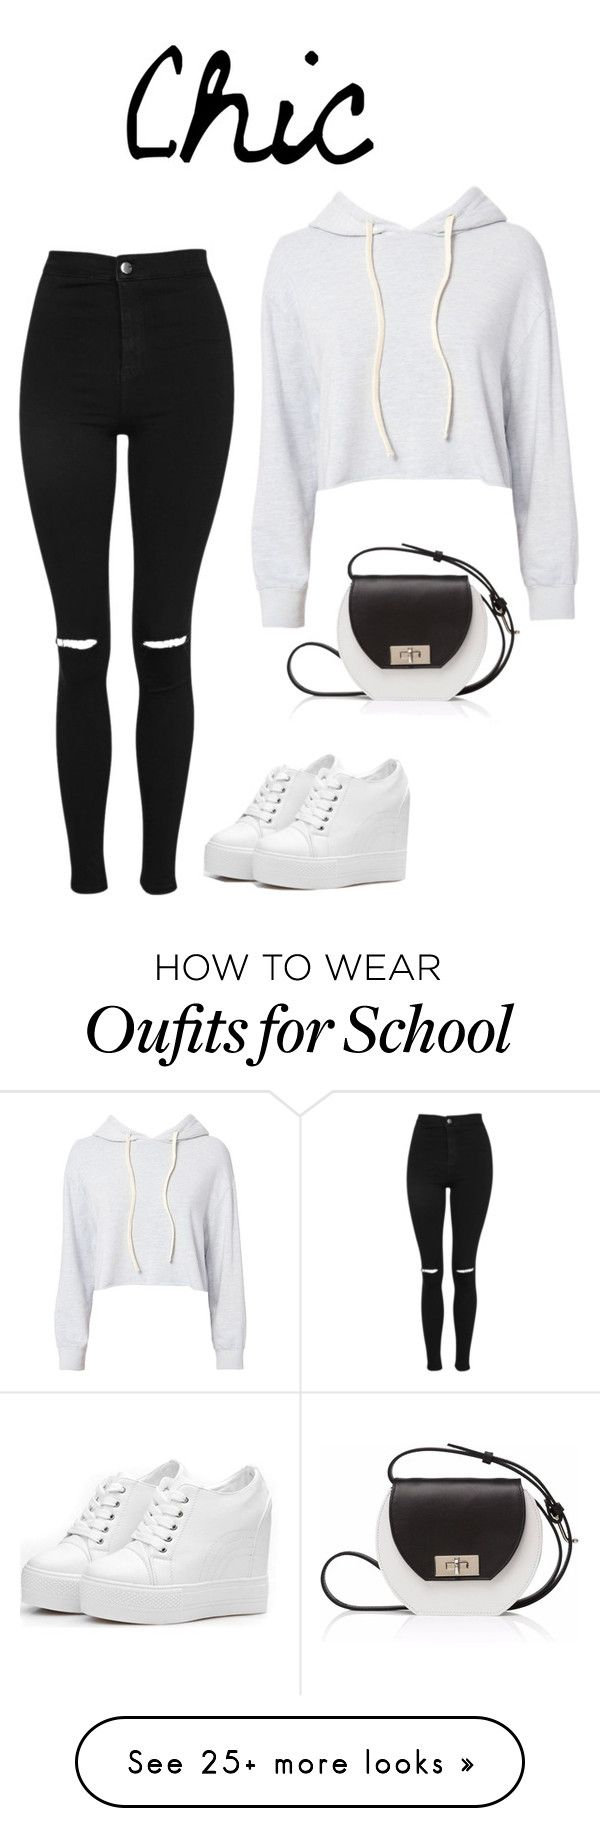 """School day"" by amksupper on Polyvore featuring Topshop, Monrow and Joanna Maxham"